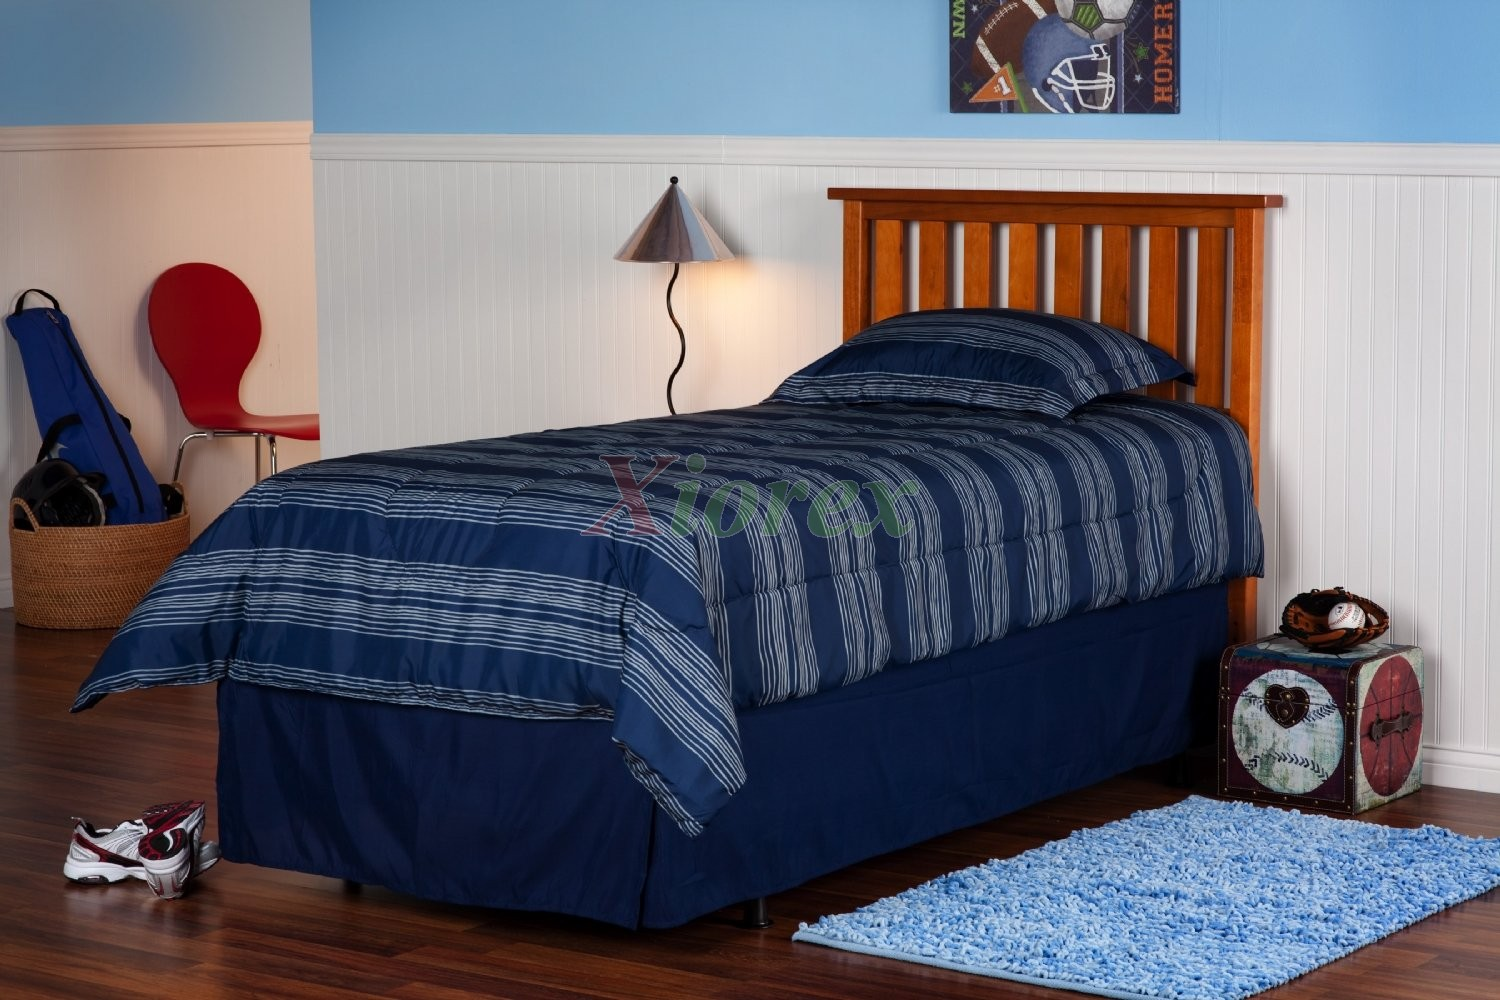 Wood Bed Headboards ~ Belmont headboard slatted wood for twin full